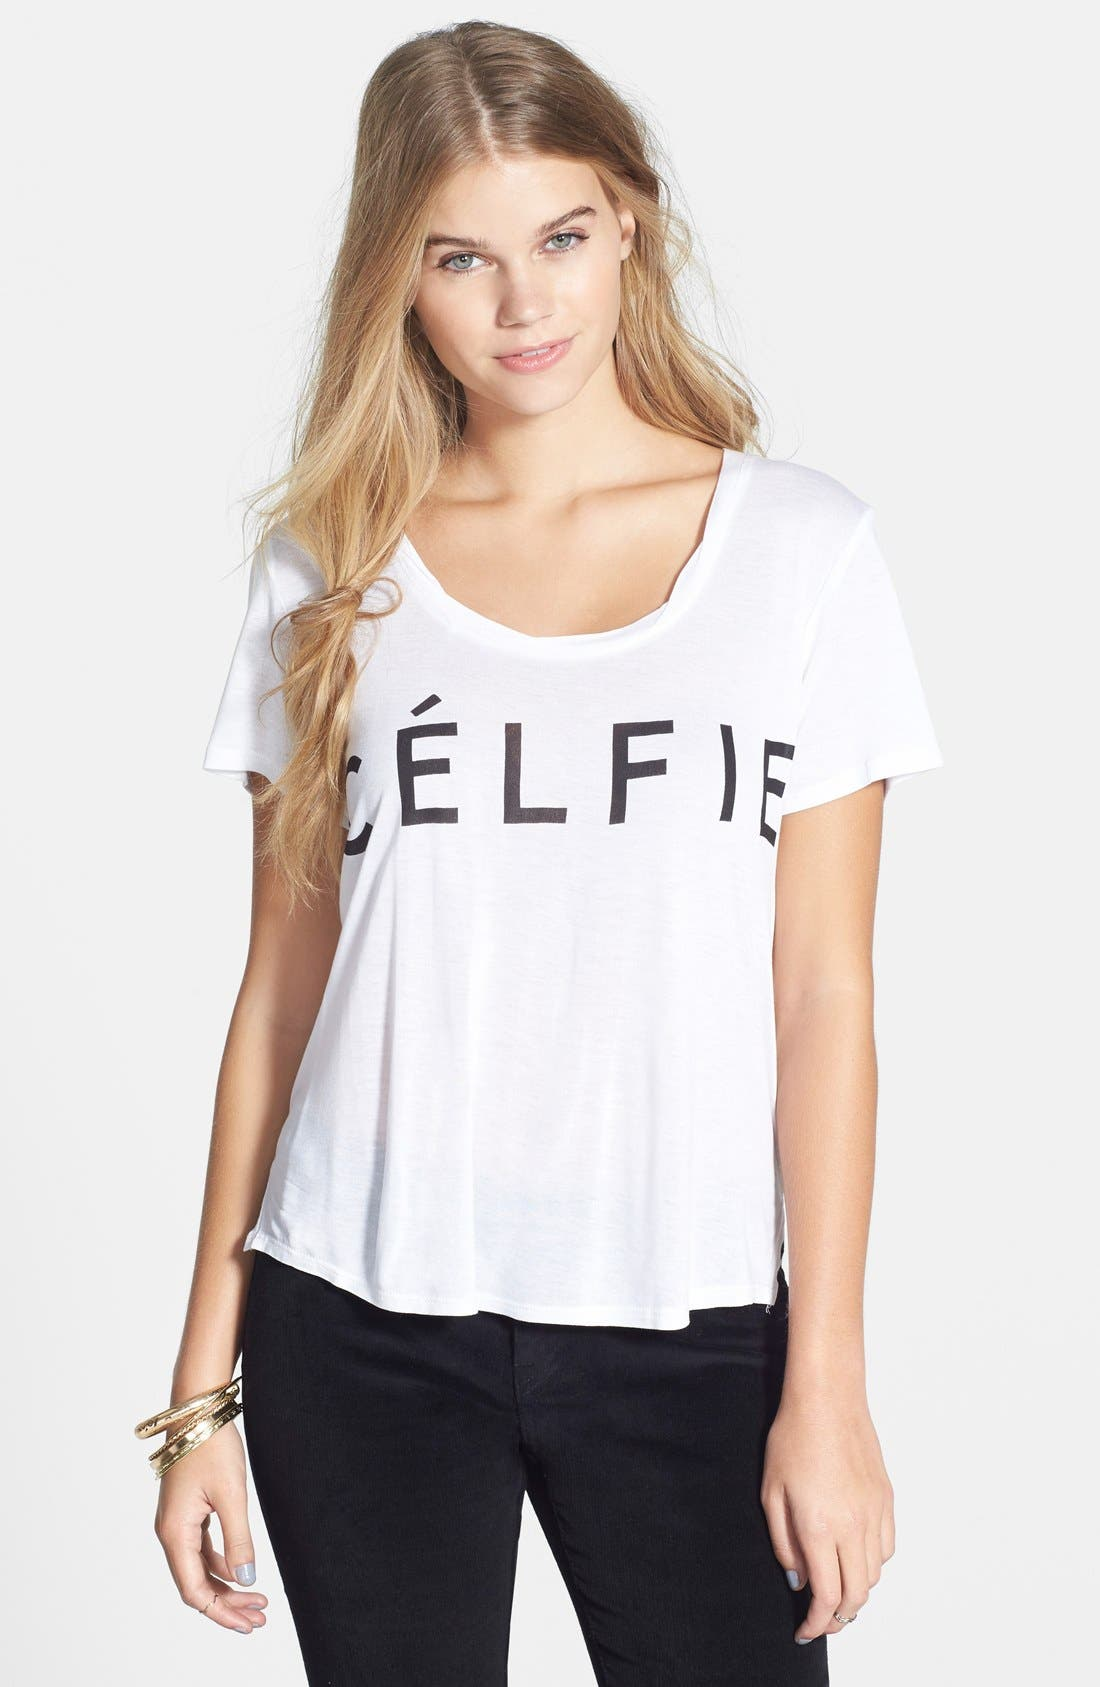 'Célfie' Graphic Tee,                         Main,                         color, White